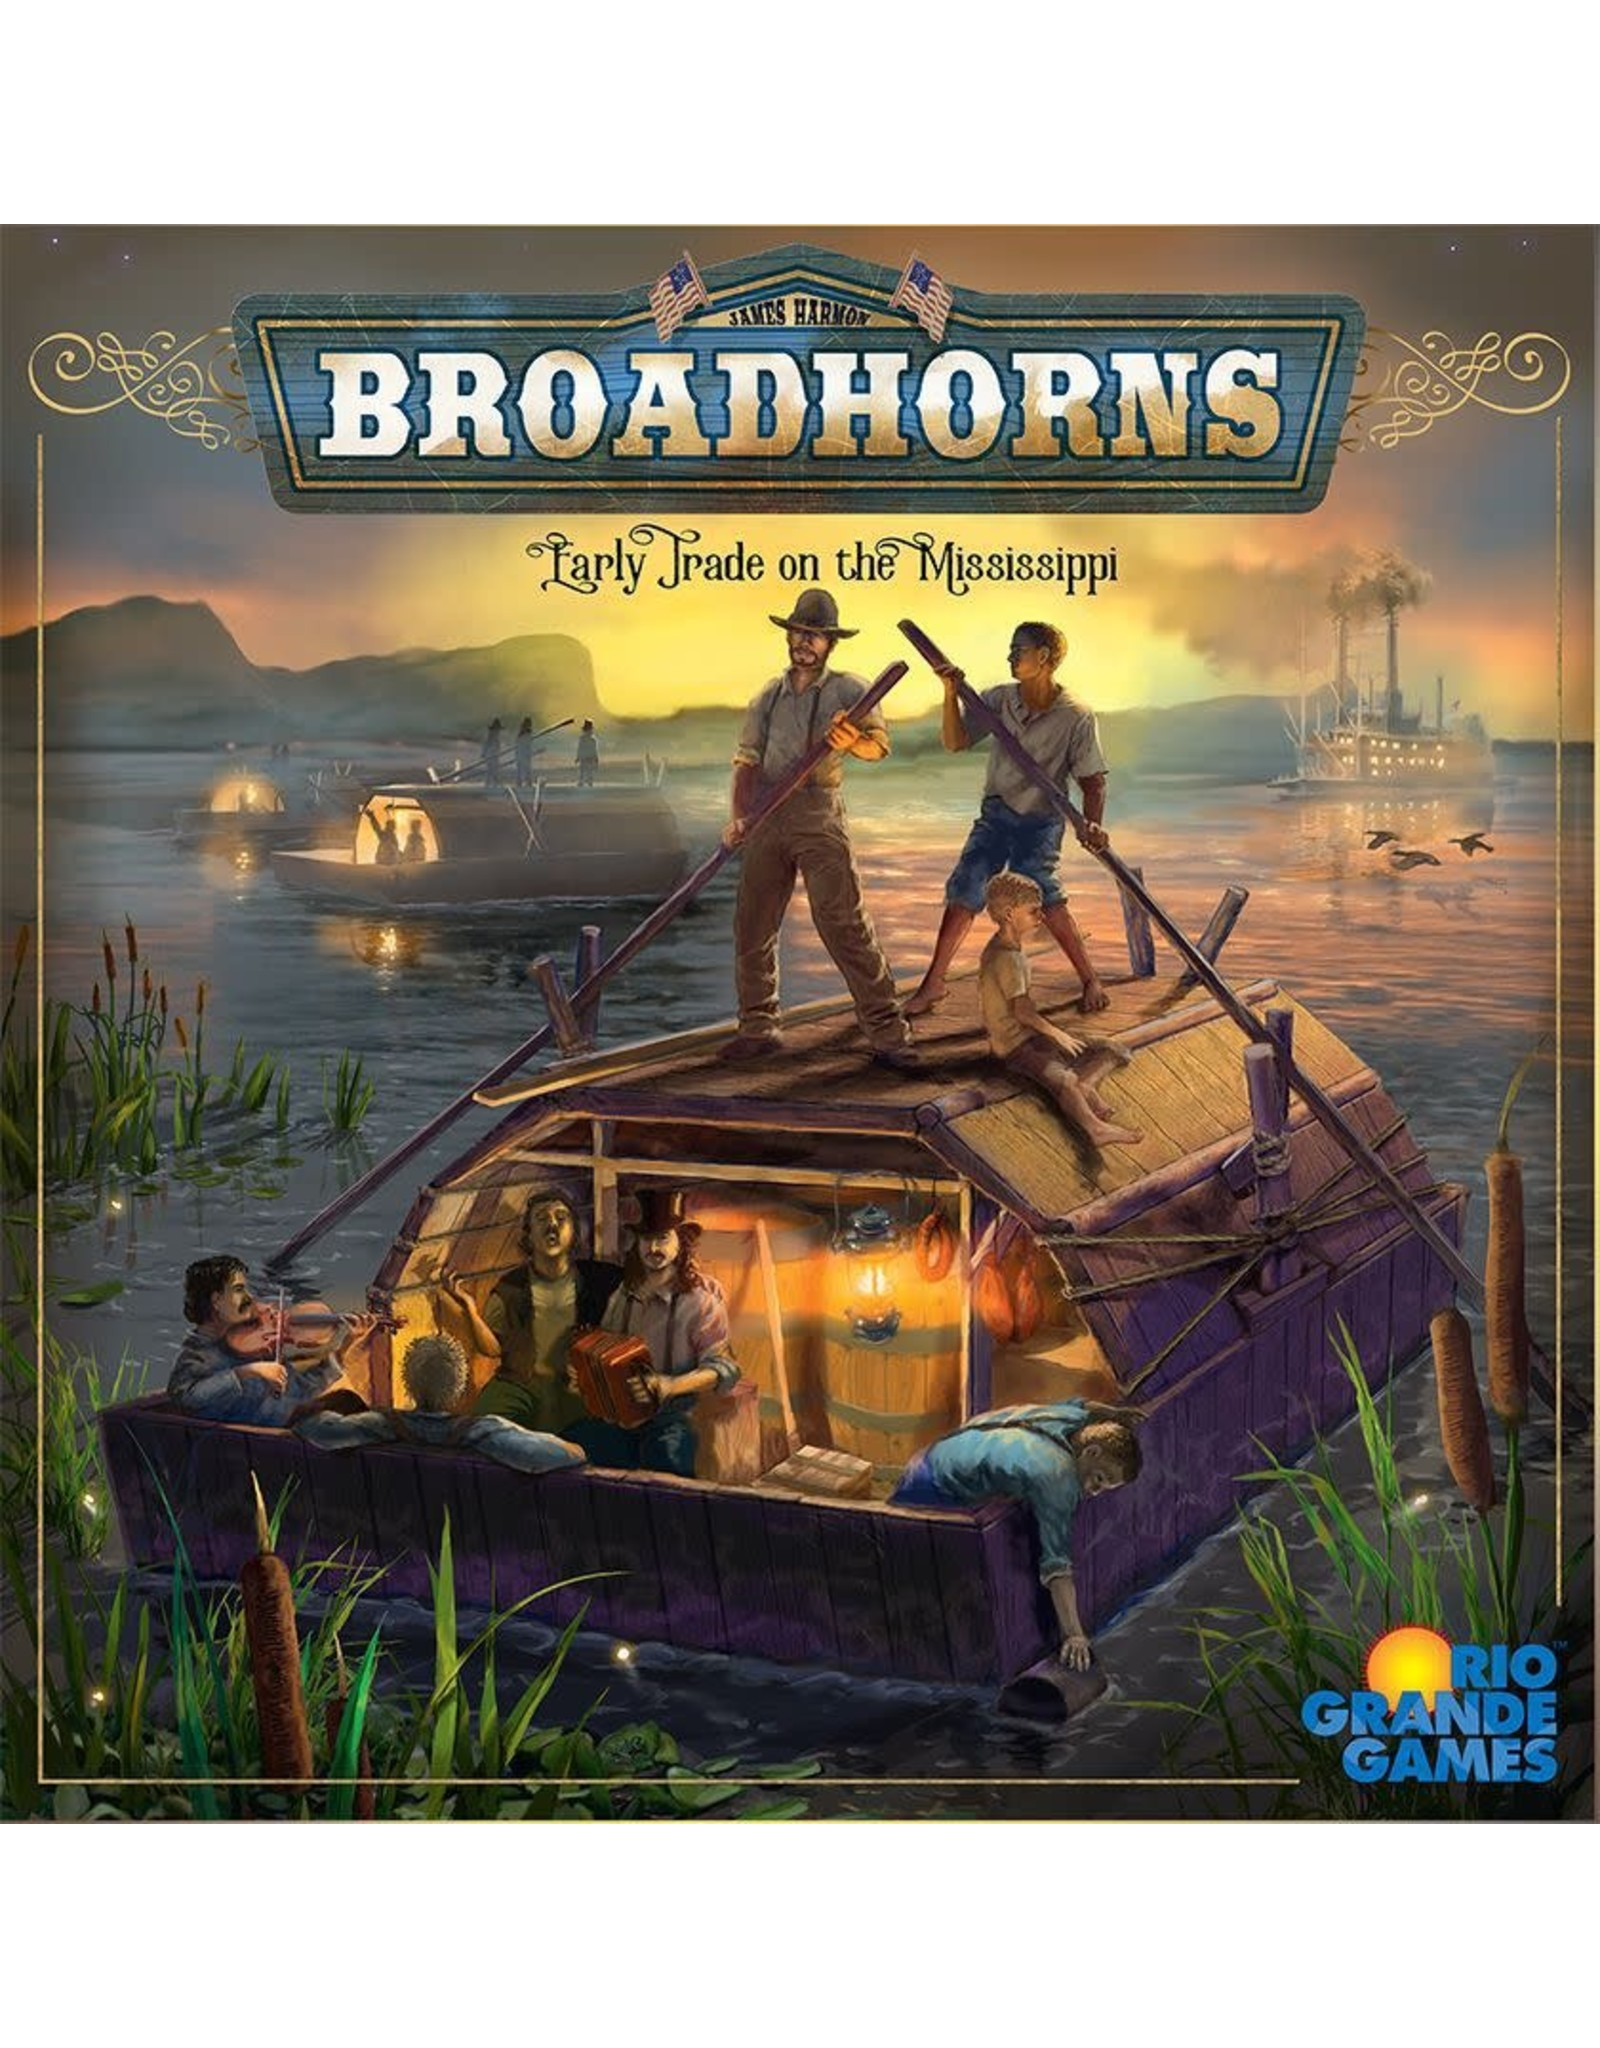 Rio Grande Games BROADHORNS: EARLY TRADE ON THE MISSISSIPPI